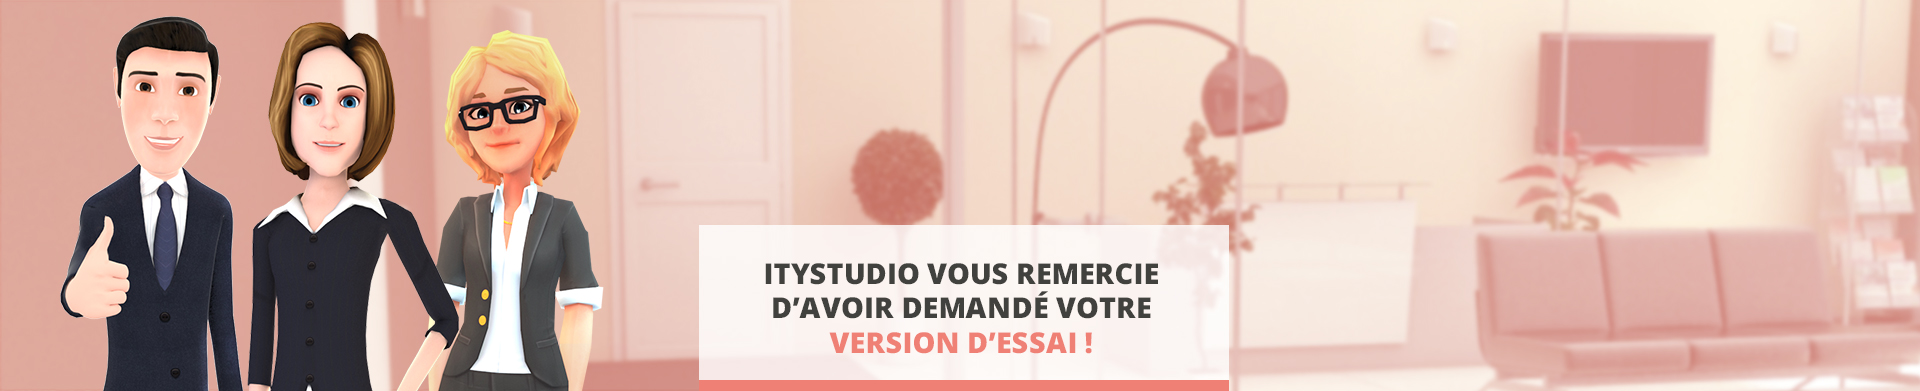 remerciment-itystudio